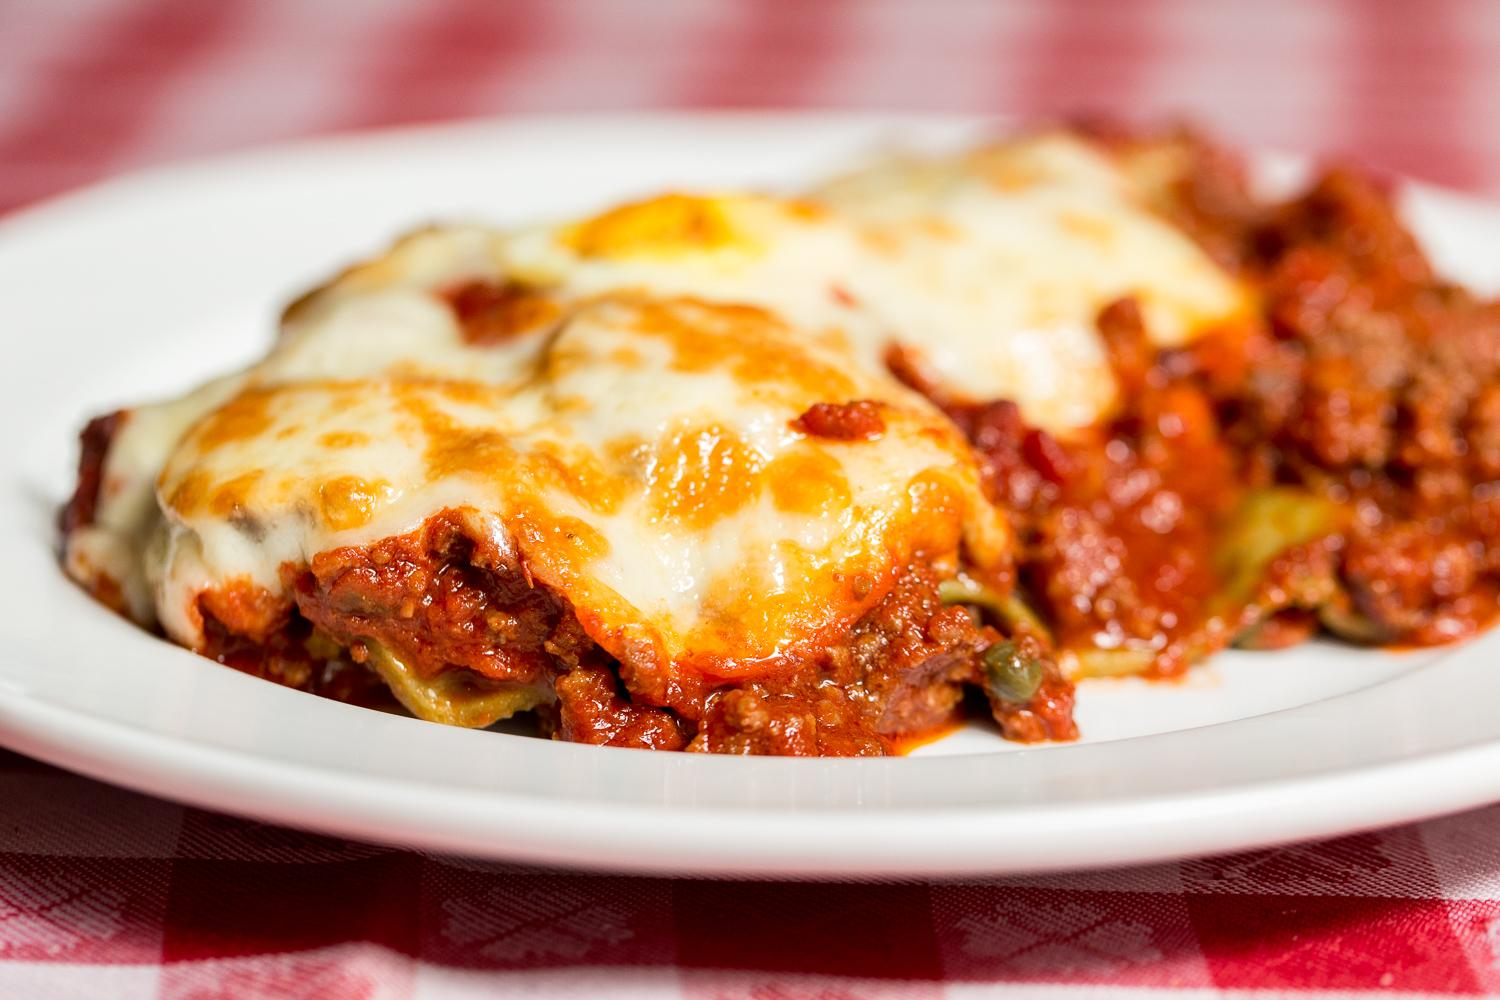 Green Lasagna D'Amelia (spinach lasagna baked with meat sauce, mozzarella, & ricotta cheese; topped with Italian Sausage) / Image: Daniel Smyth Photography